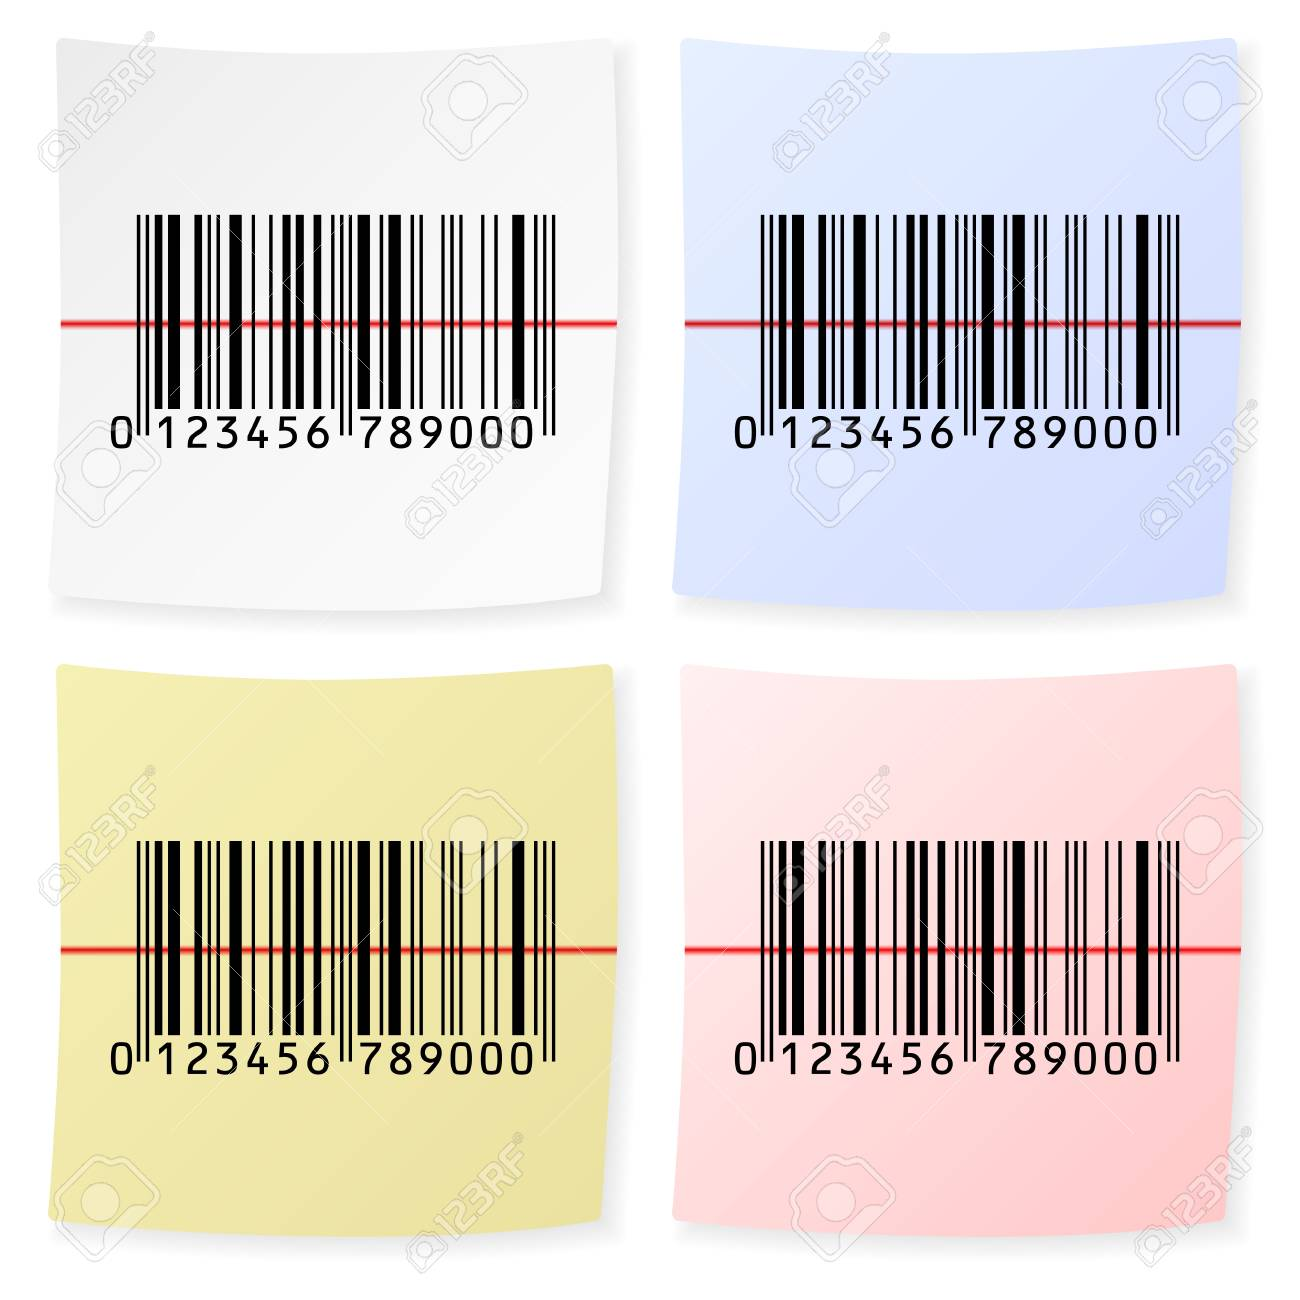 Barcode sticker on a white background Stock Vector - 17300620